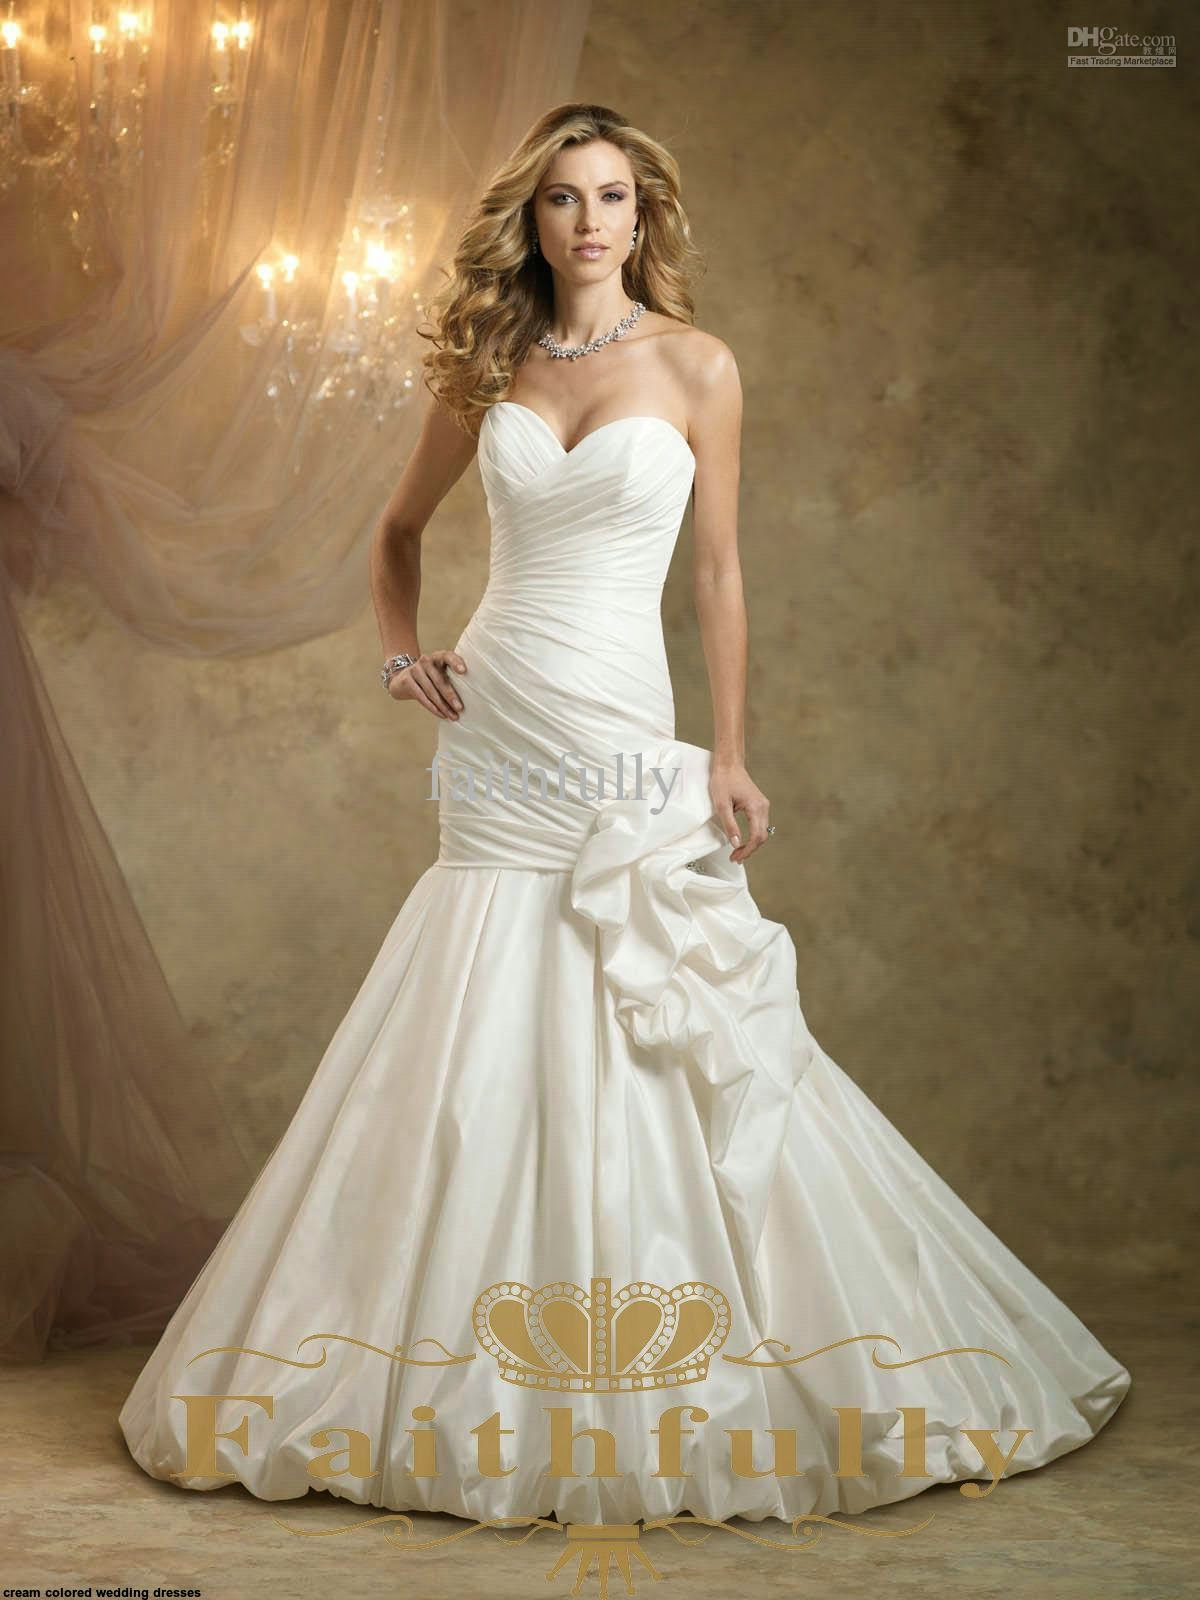 Cream colored wedding dresses wedding dresses in jax for Wedding dresses in color